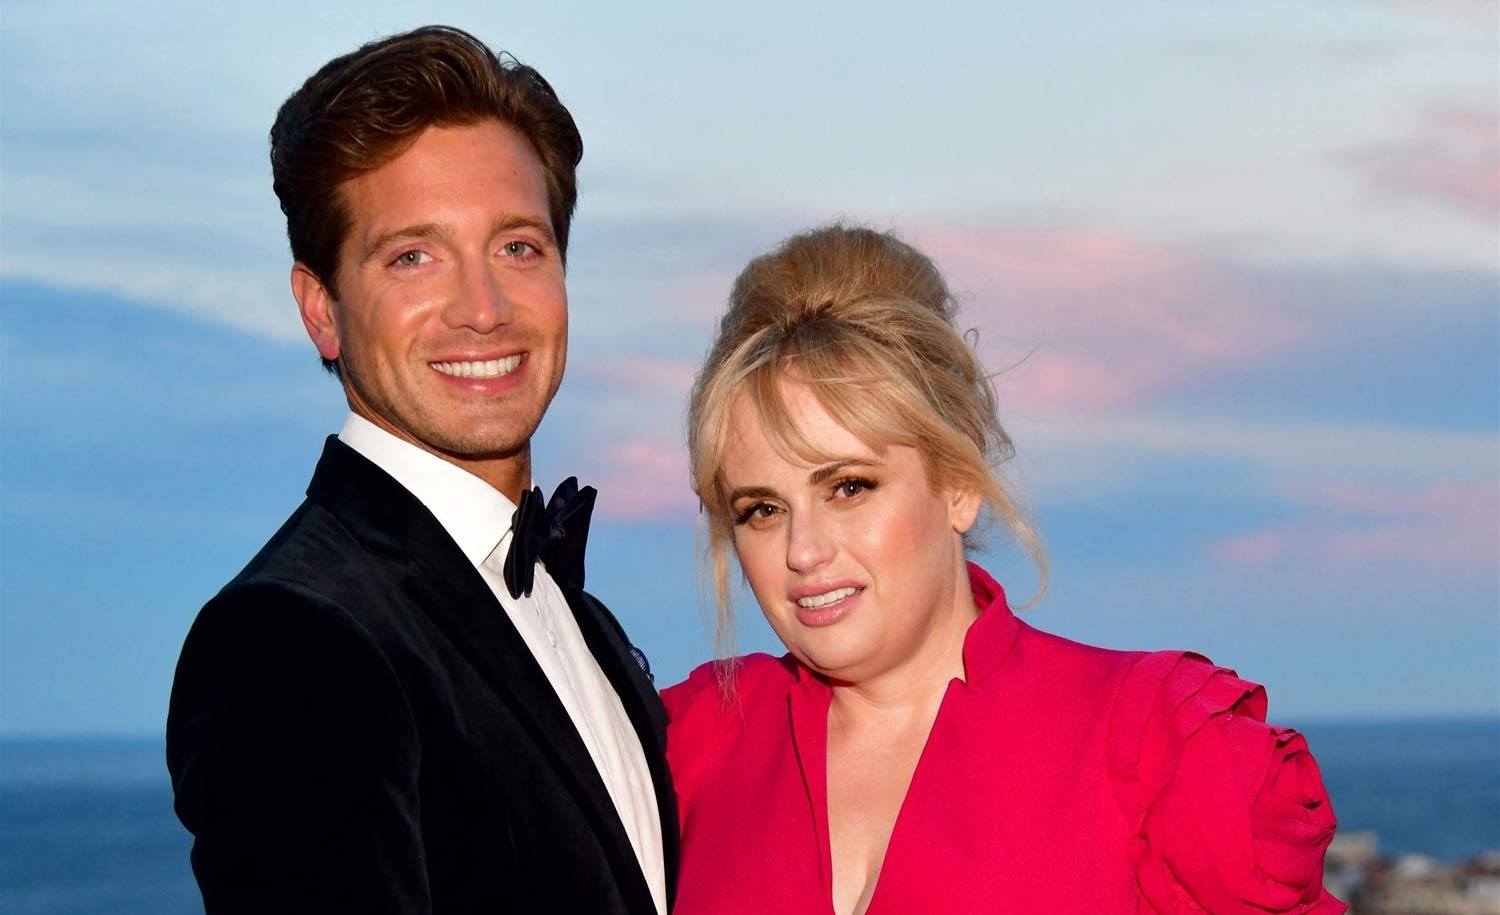 Rebel Wilson and Jacob Busch are Planning to get Married Soon